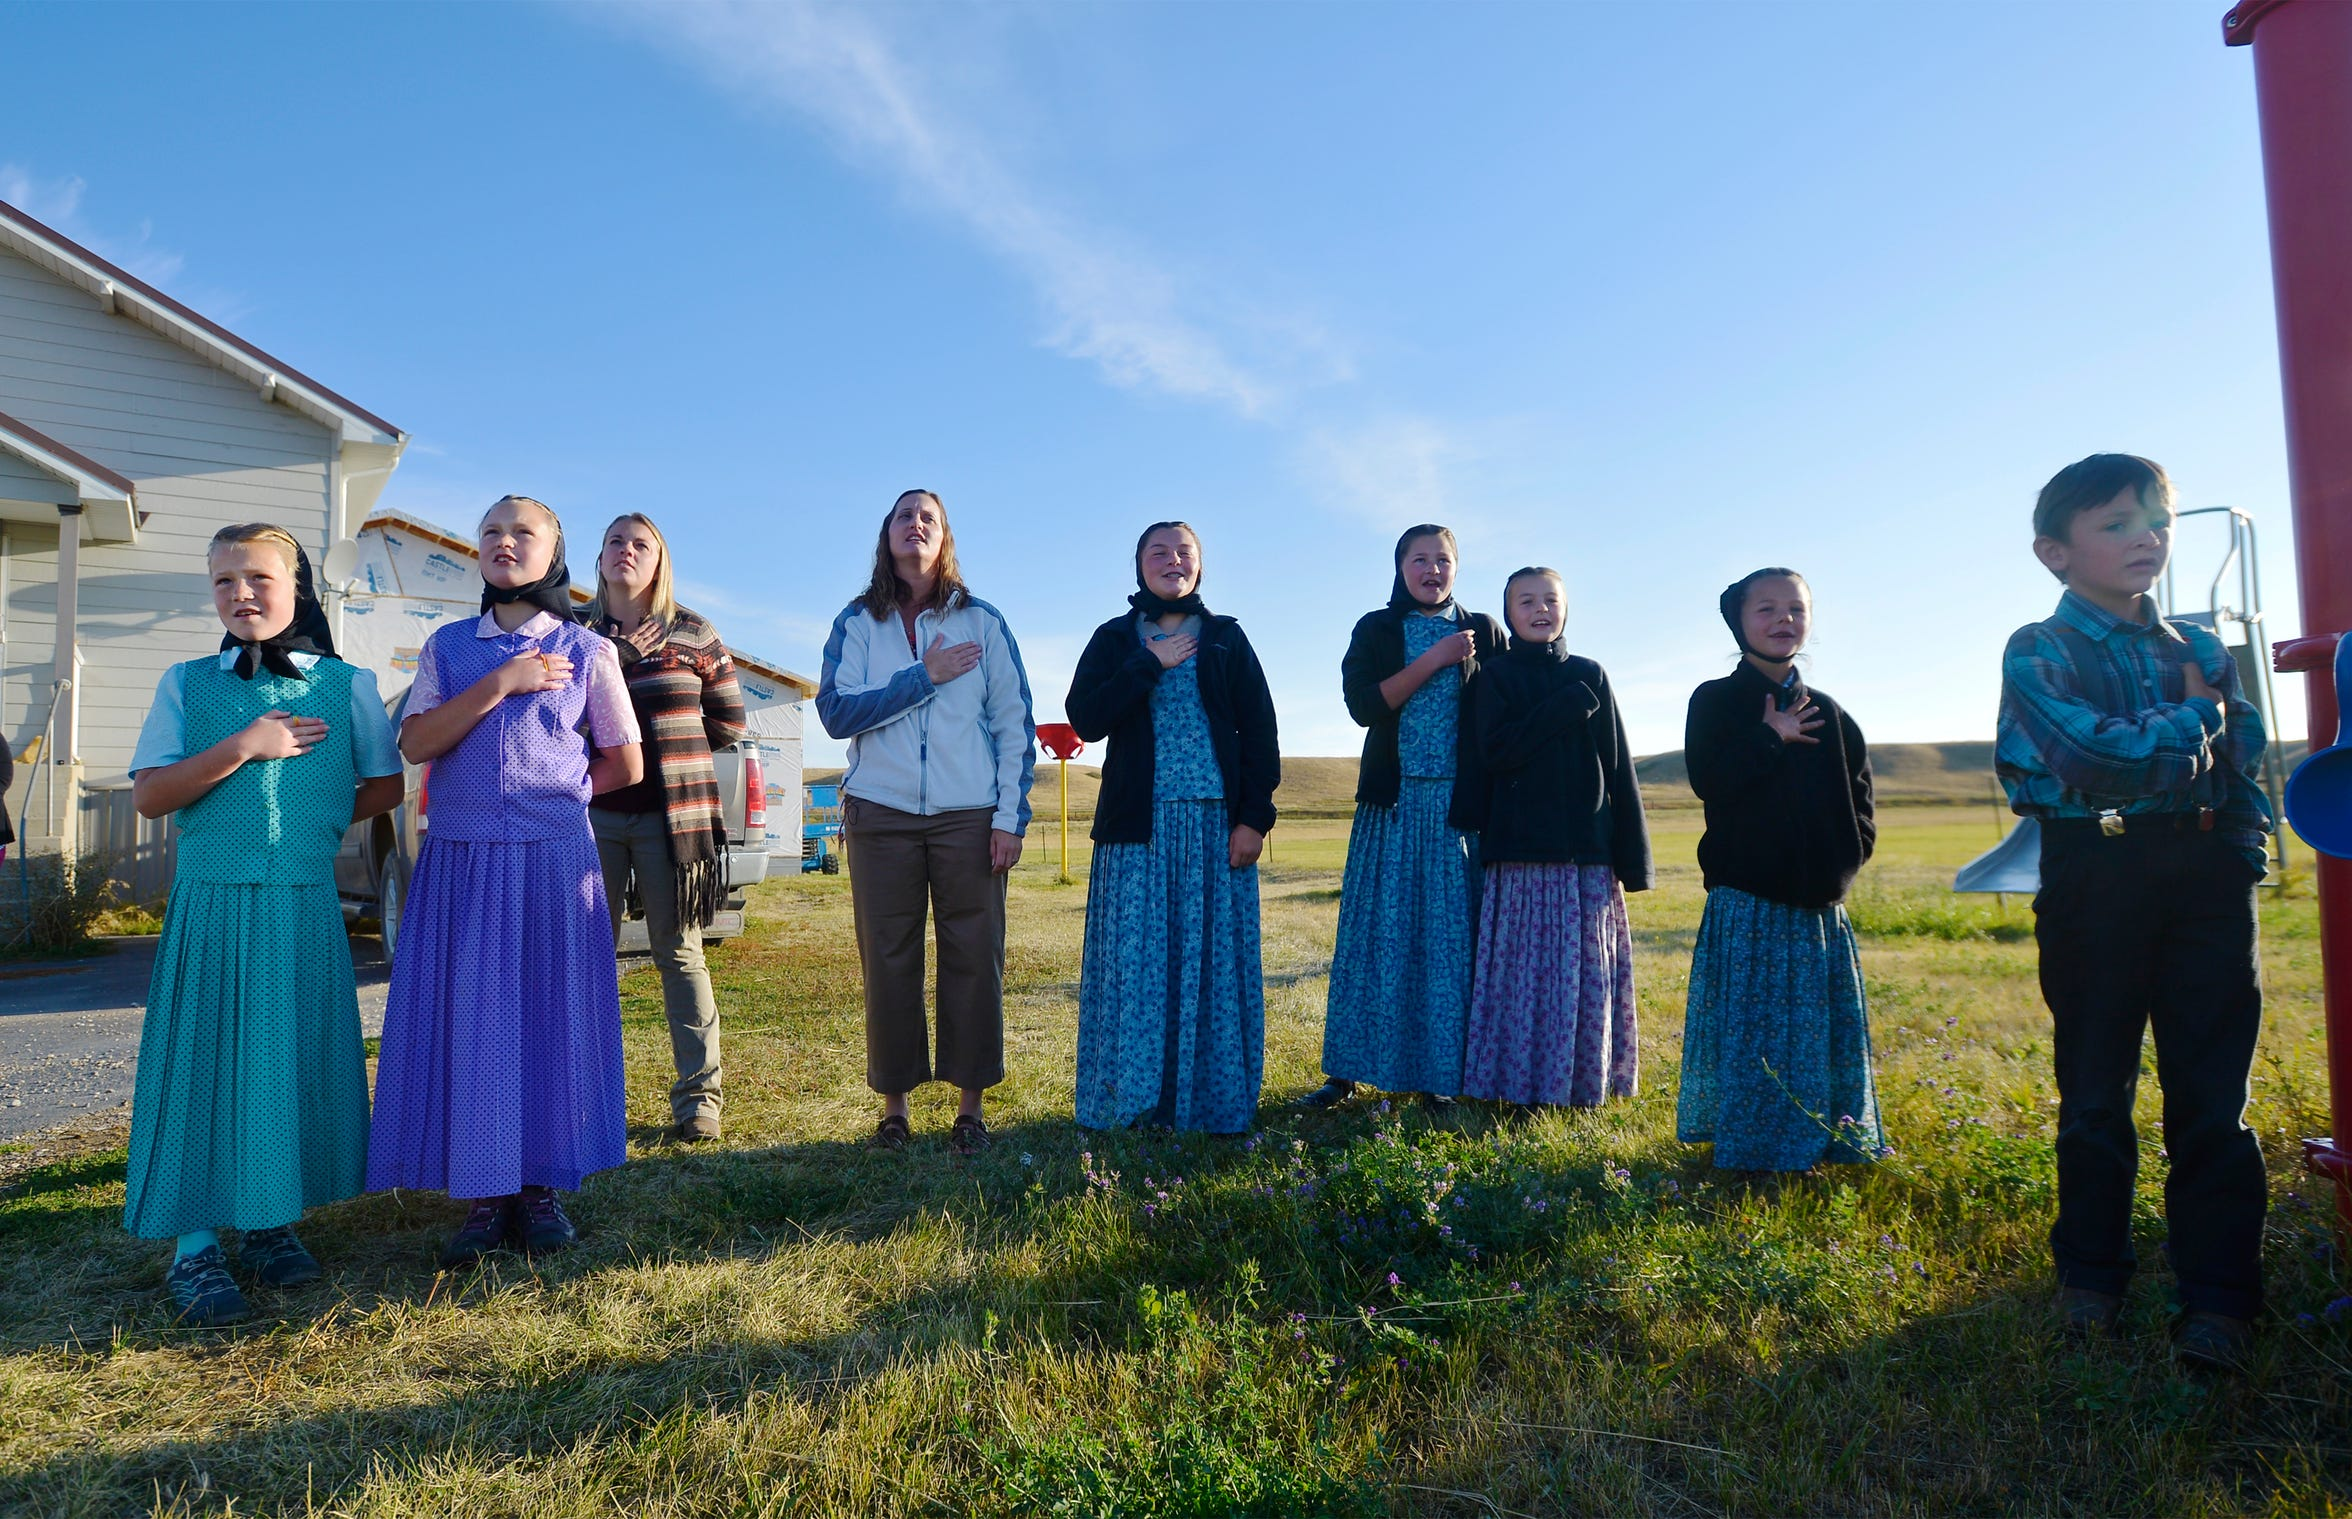 Deerfield School teacher Traci Manseau, her aide Kylee Clark and some of her students recite the Pledge of Allegiance around the flagpole. Older boys have to work in the Hutterite colony's dairy in the morning and come in late.